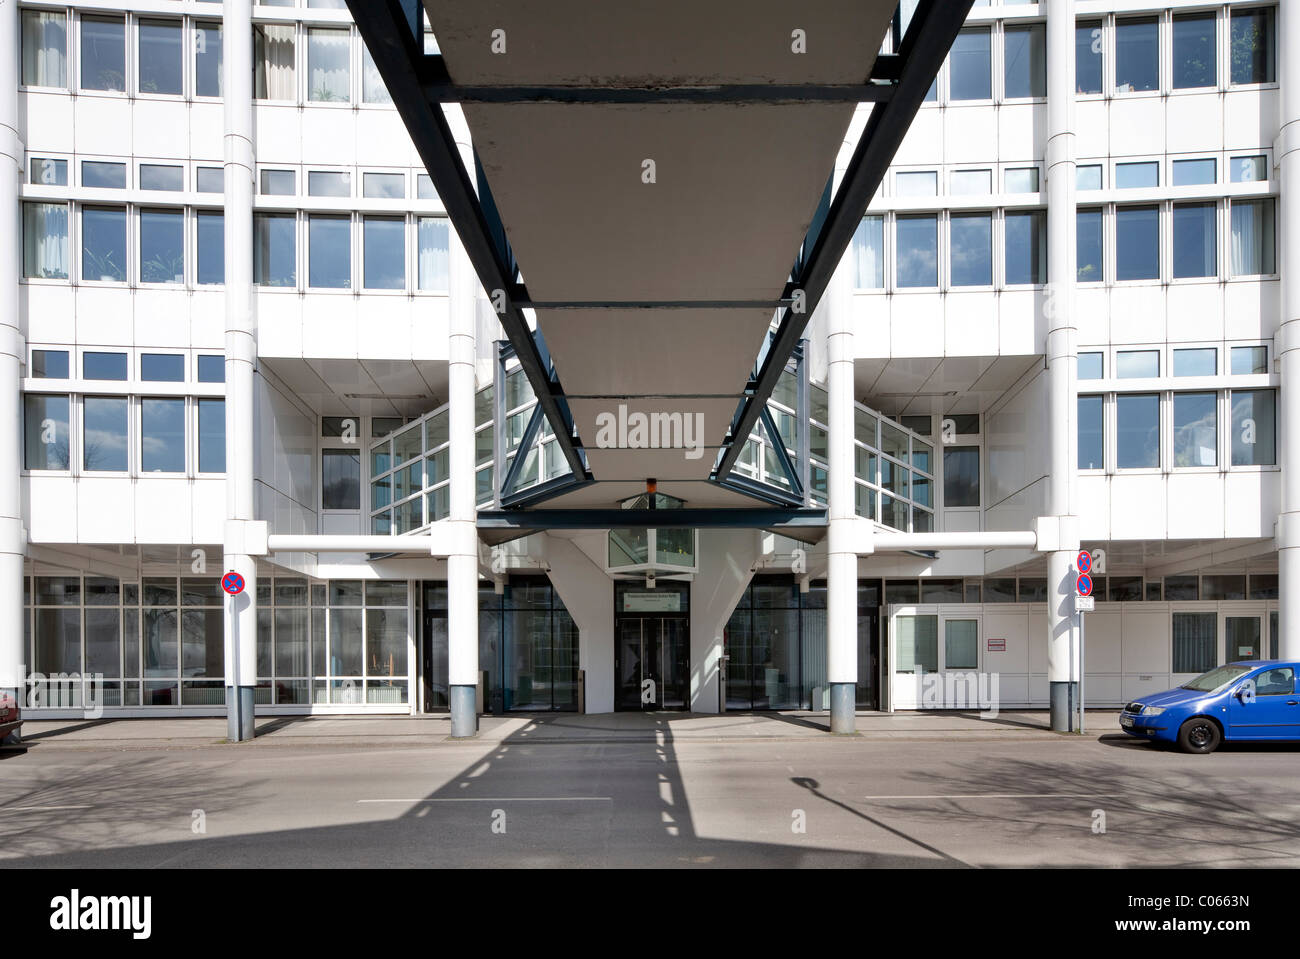 Fraunhofer Institute for Production Systems and Design Technology, Charlottenburg, Berlin, Germany, Europe - Stock Image